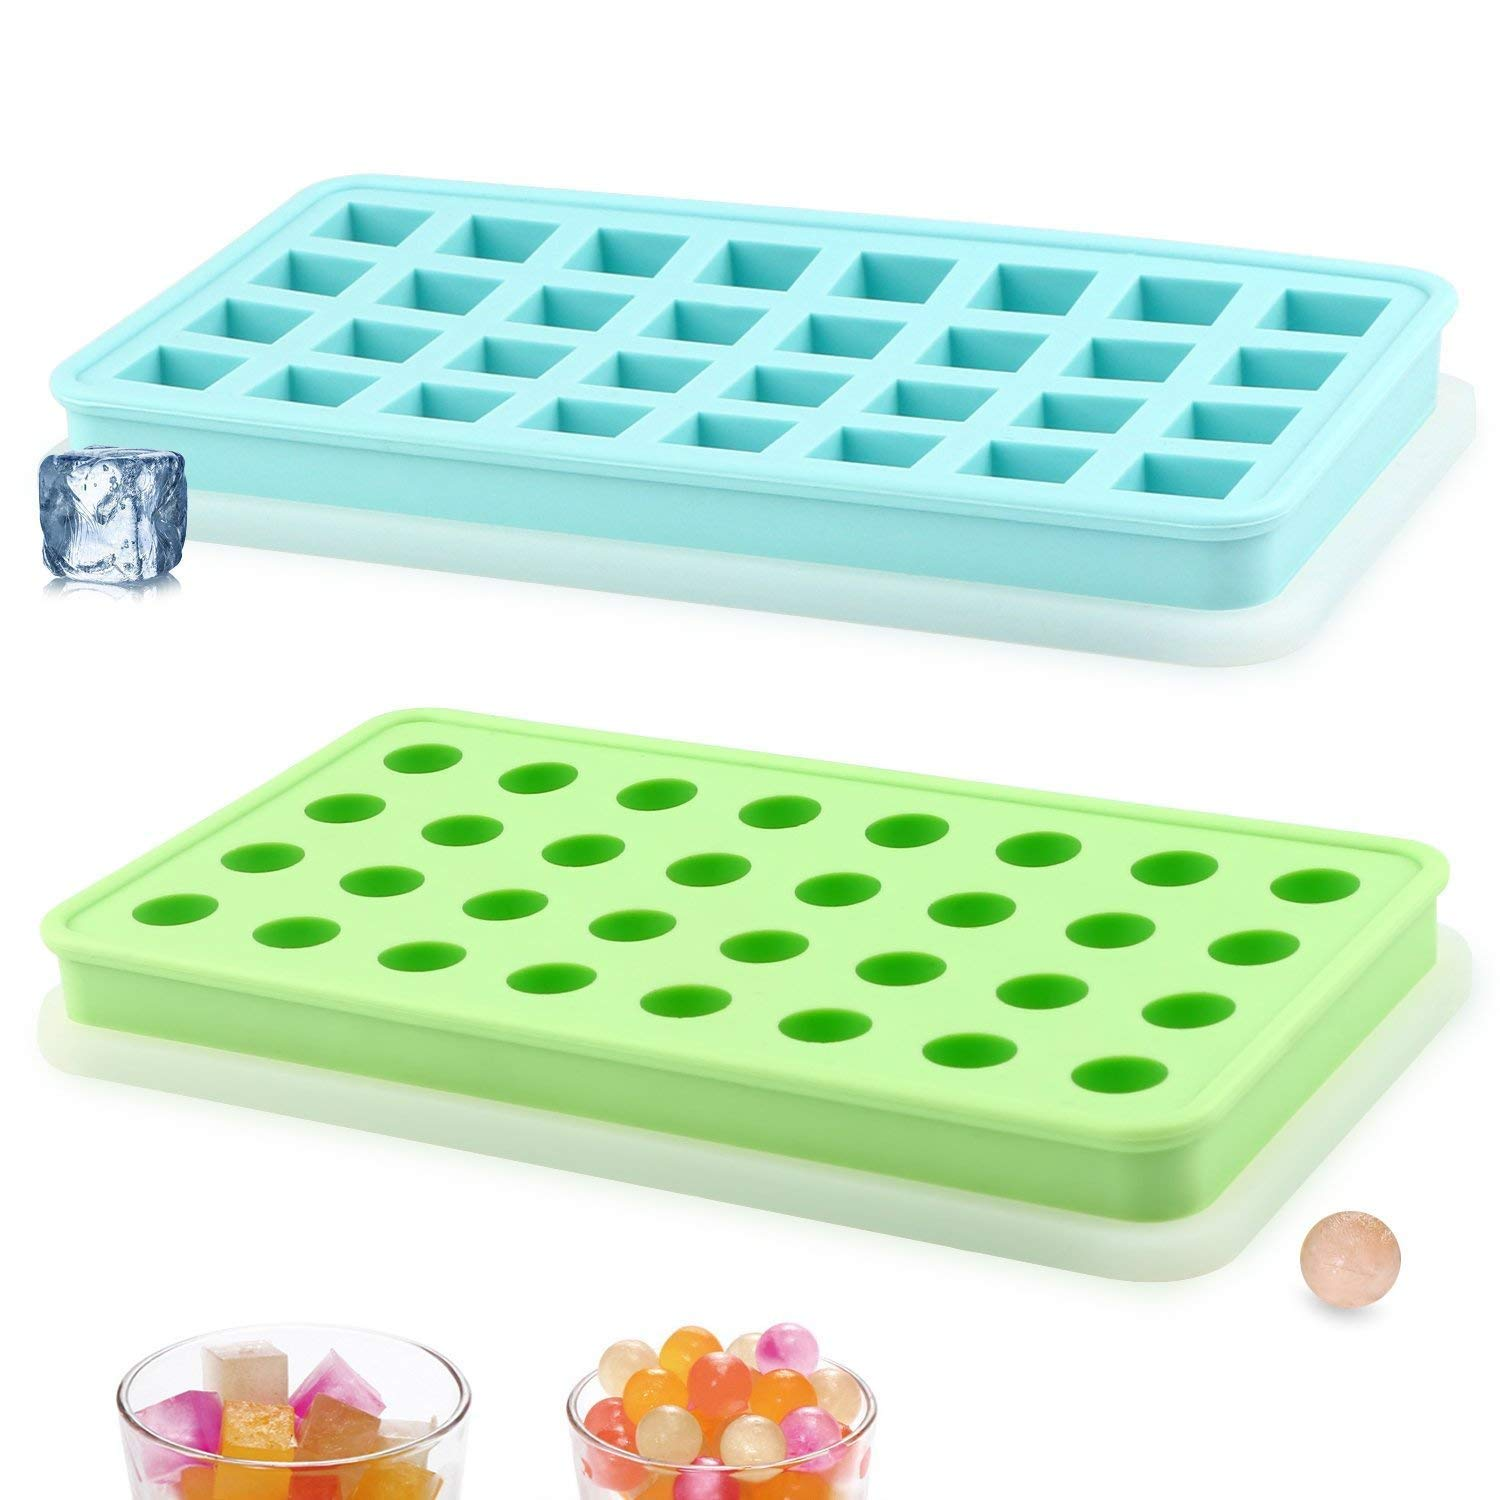 WINIT 2-Pack Silicone Ice Cube Trays with Watertight Lids, 72 Grid Flexible Easy Release Ice Cubes Mold Storage Tray w/Double Security Leak-Proof Silicone Cover, Water Diversion Design (Blue+Green)